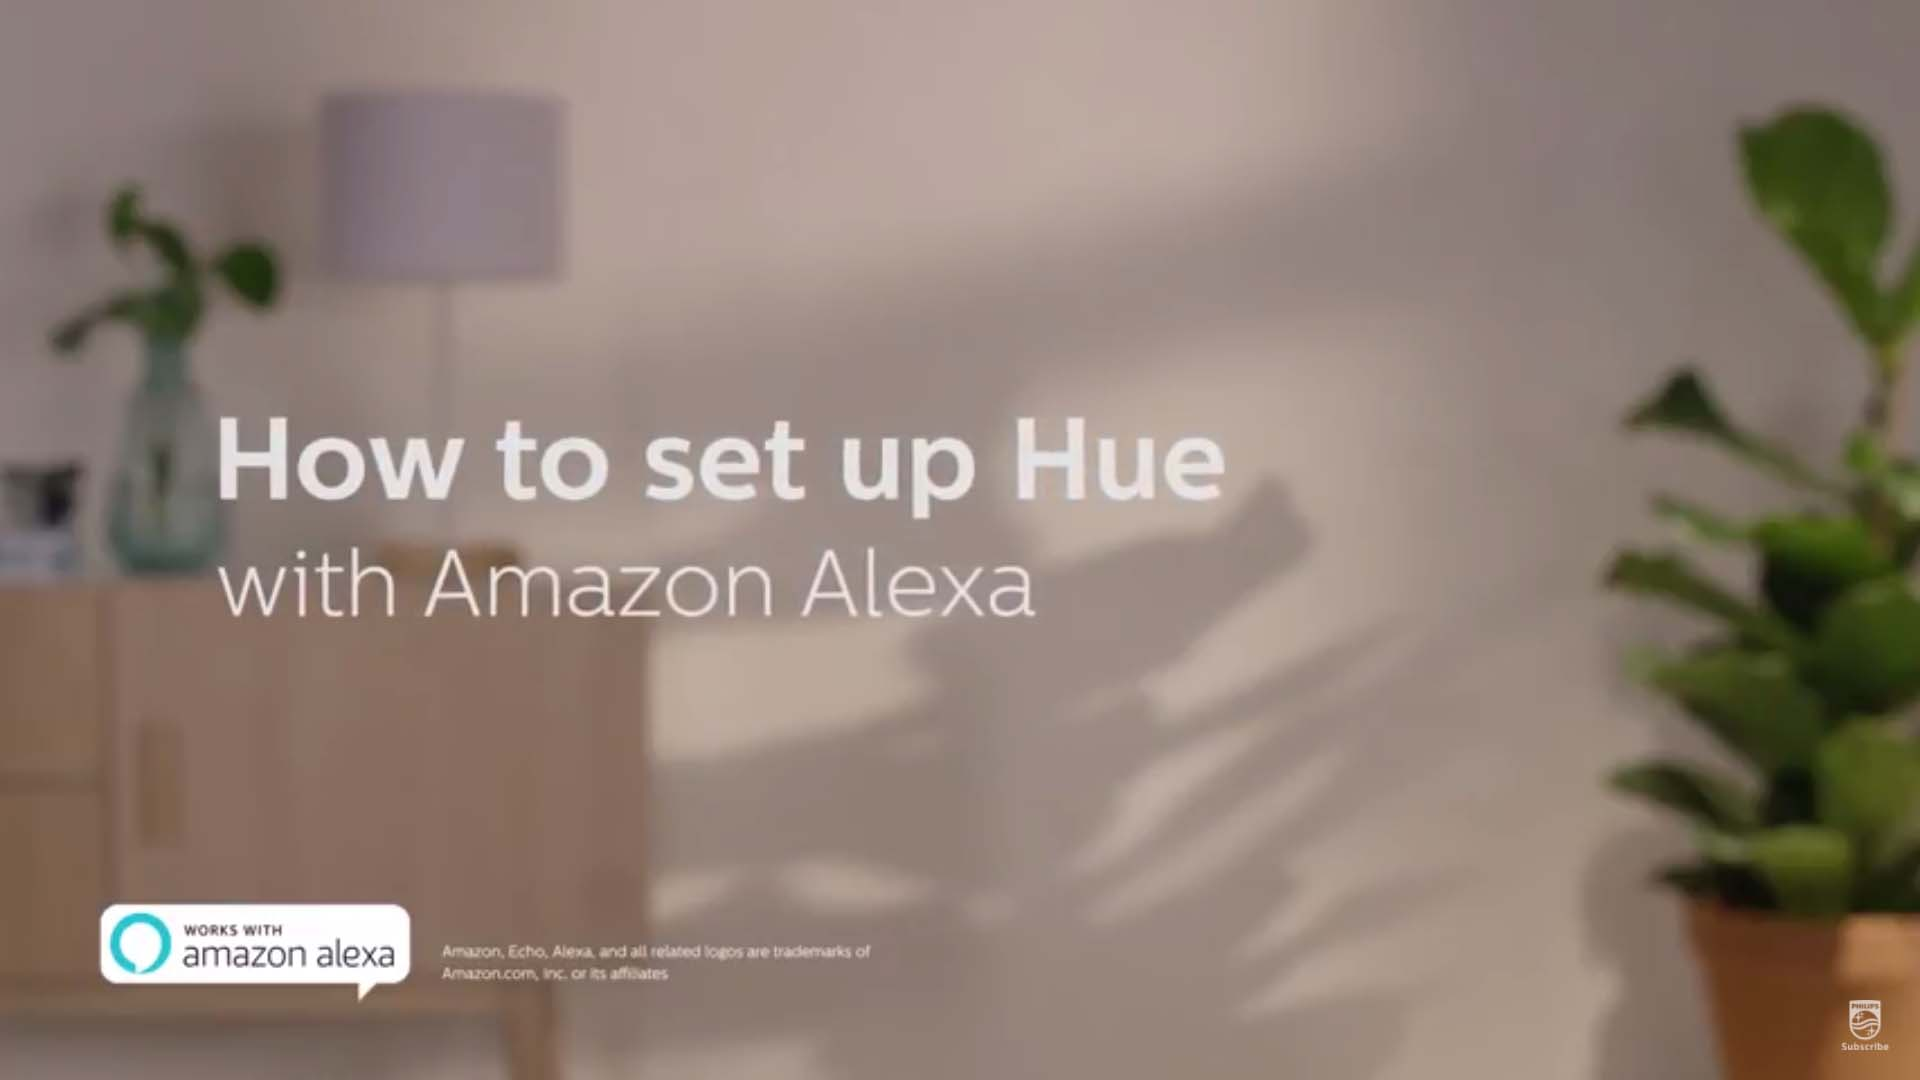 Philips Hue How to set up Hue with Amazon Alexa video